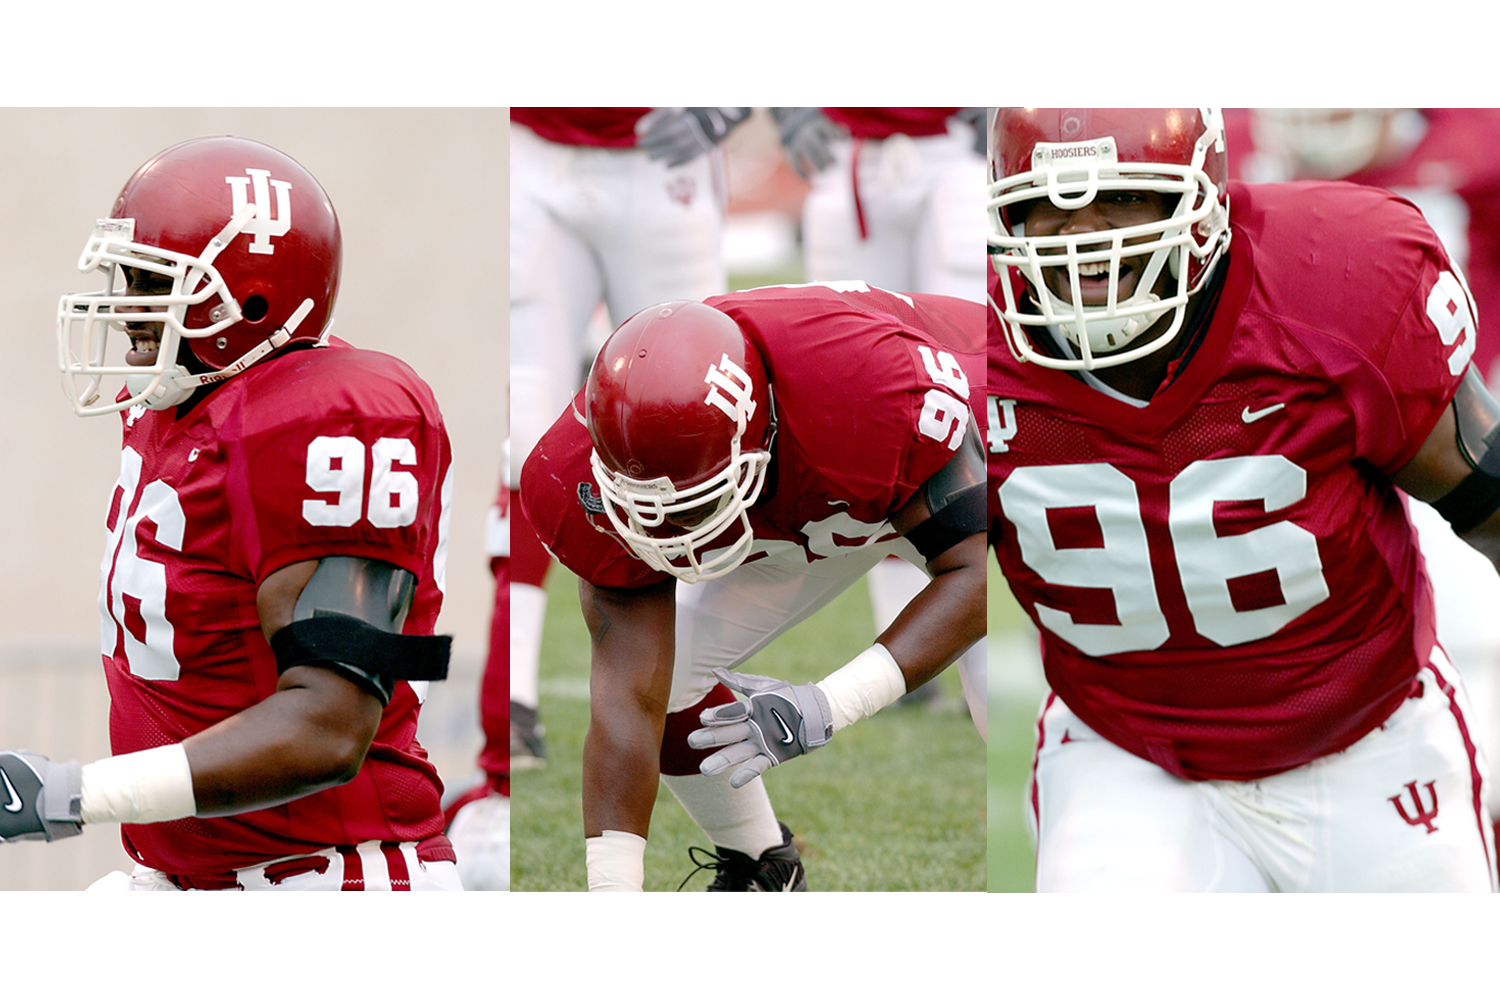 A collage of photos of former IU football player Chris Beaty.